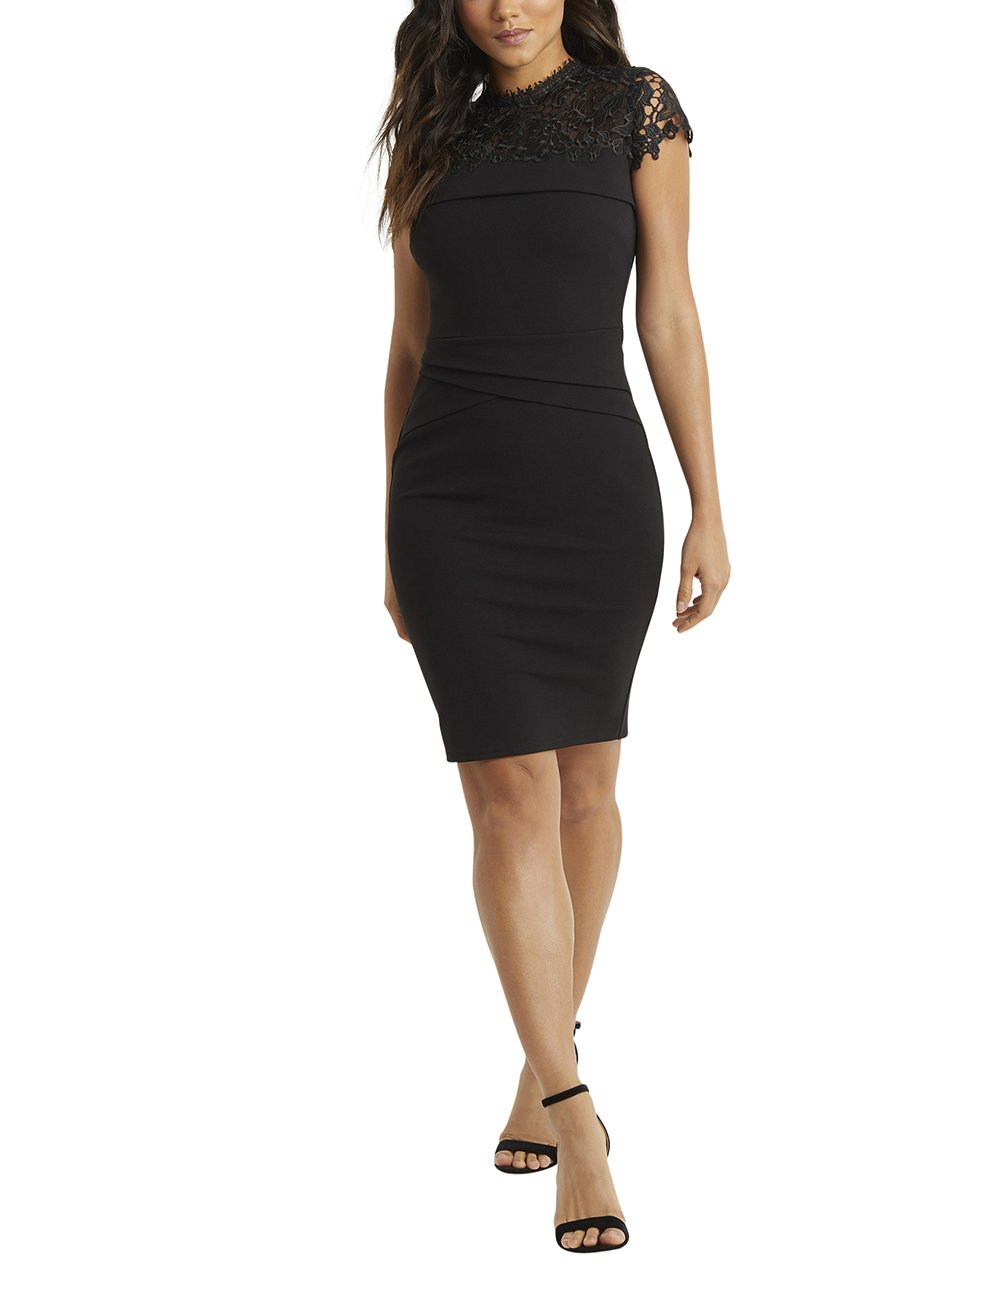 LIPSY Womens Lace Top Pleated Bodycon Dress Black US 6 (UK 10) by LIPSY